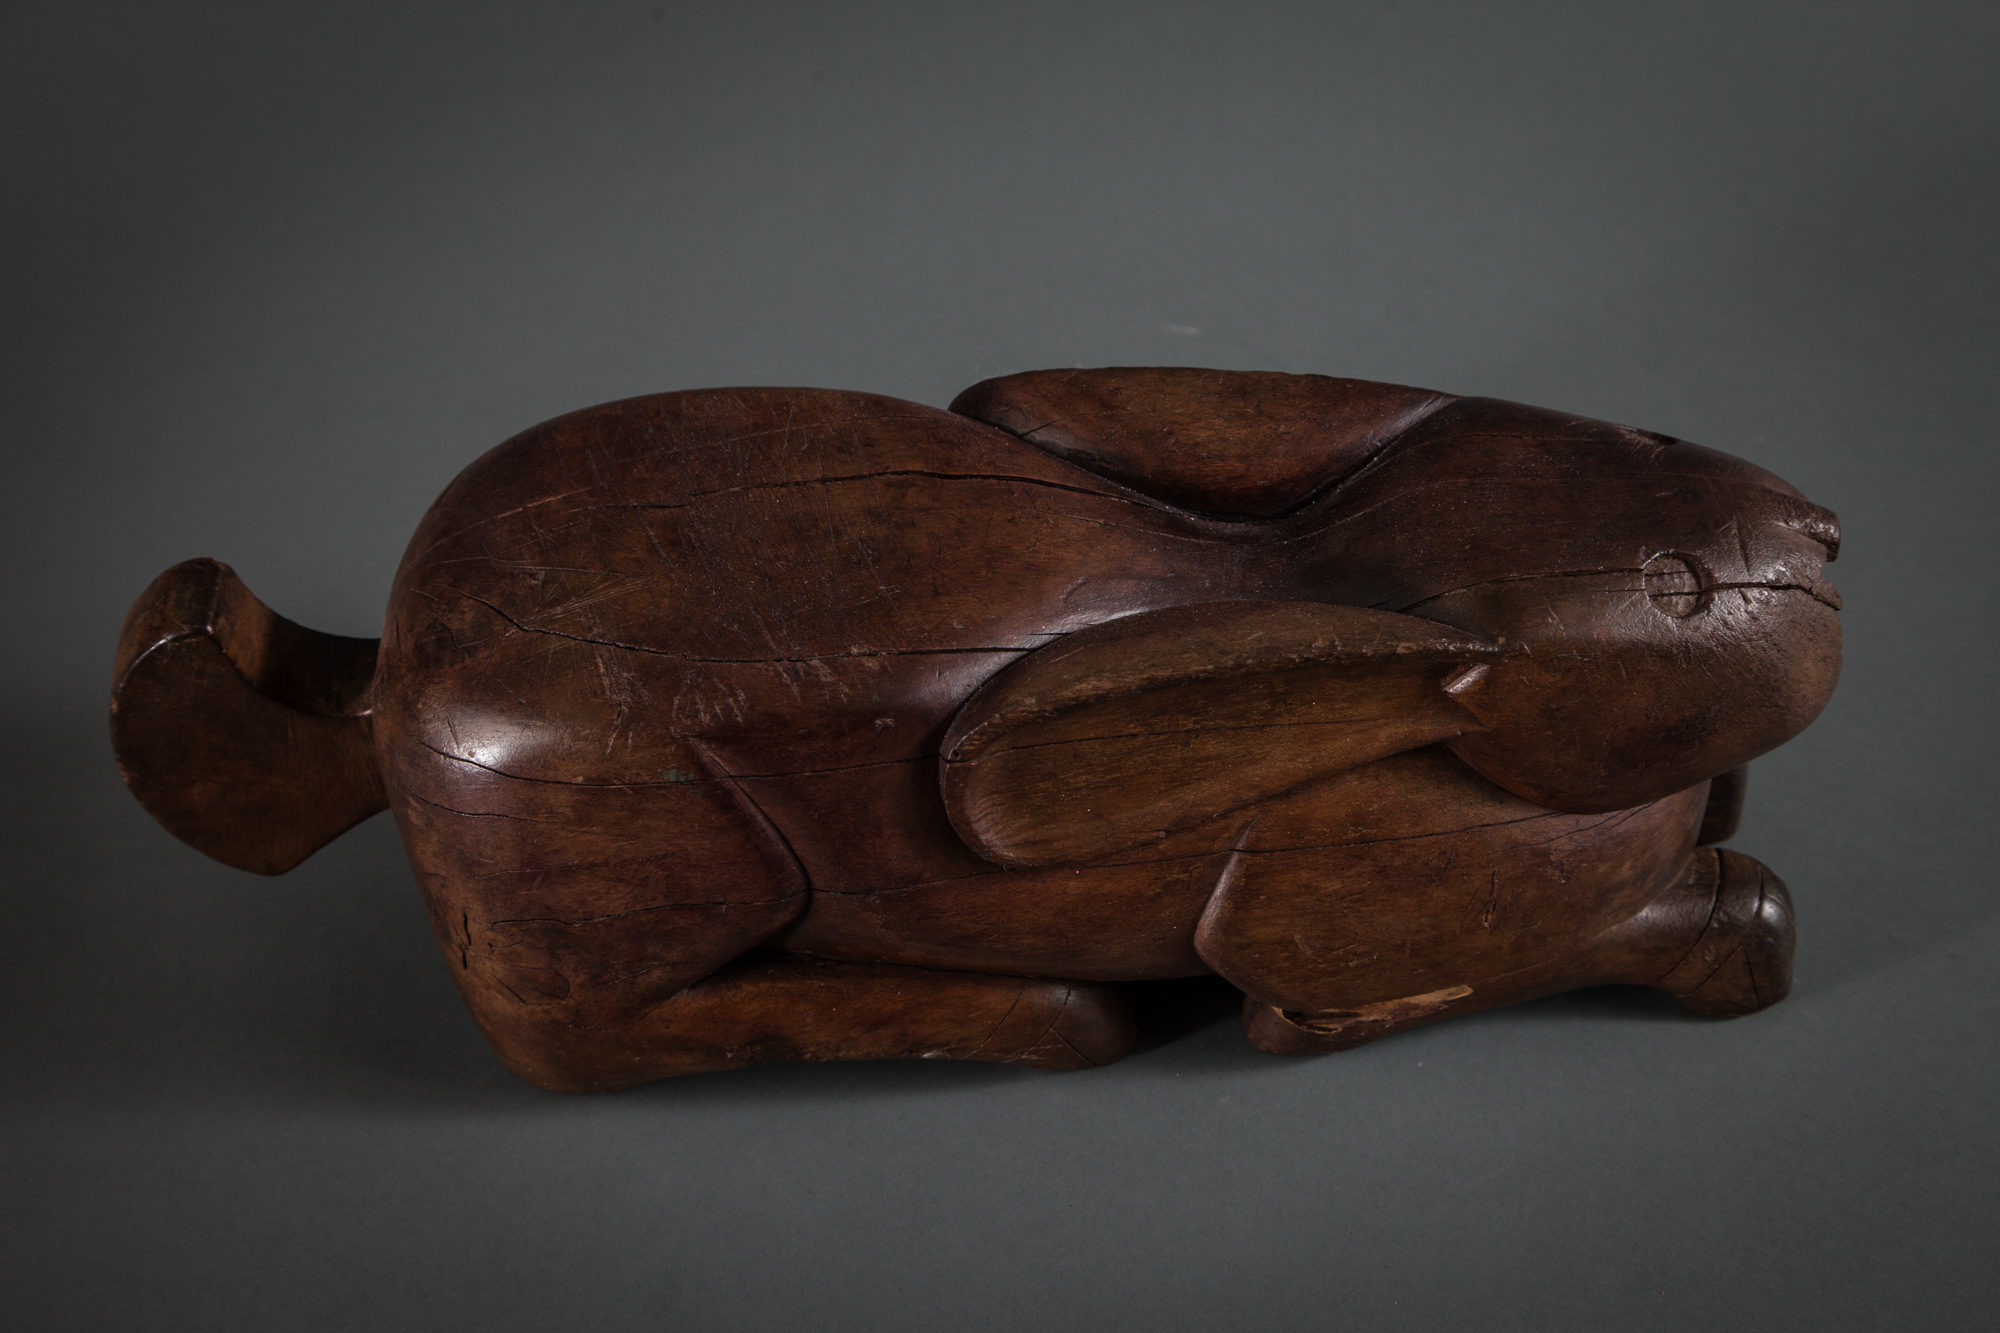 Indonesian Coconut Chopping Block of a Bunny